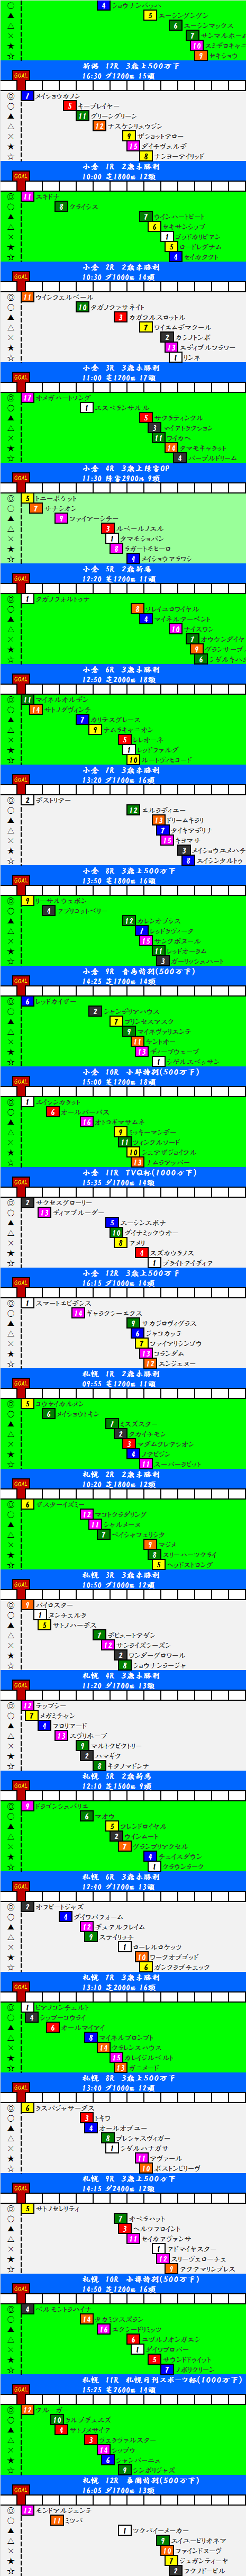 2015082202.png